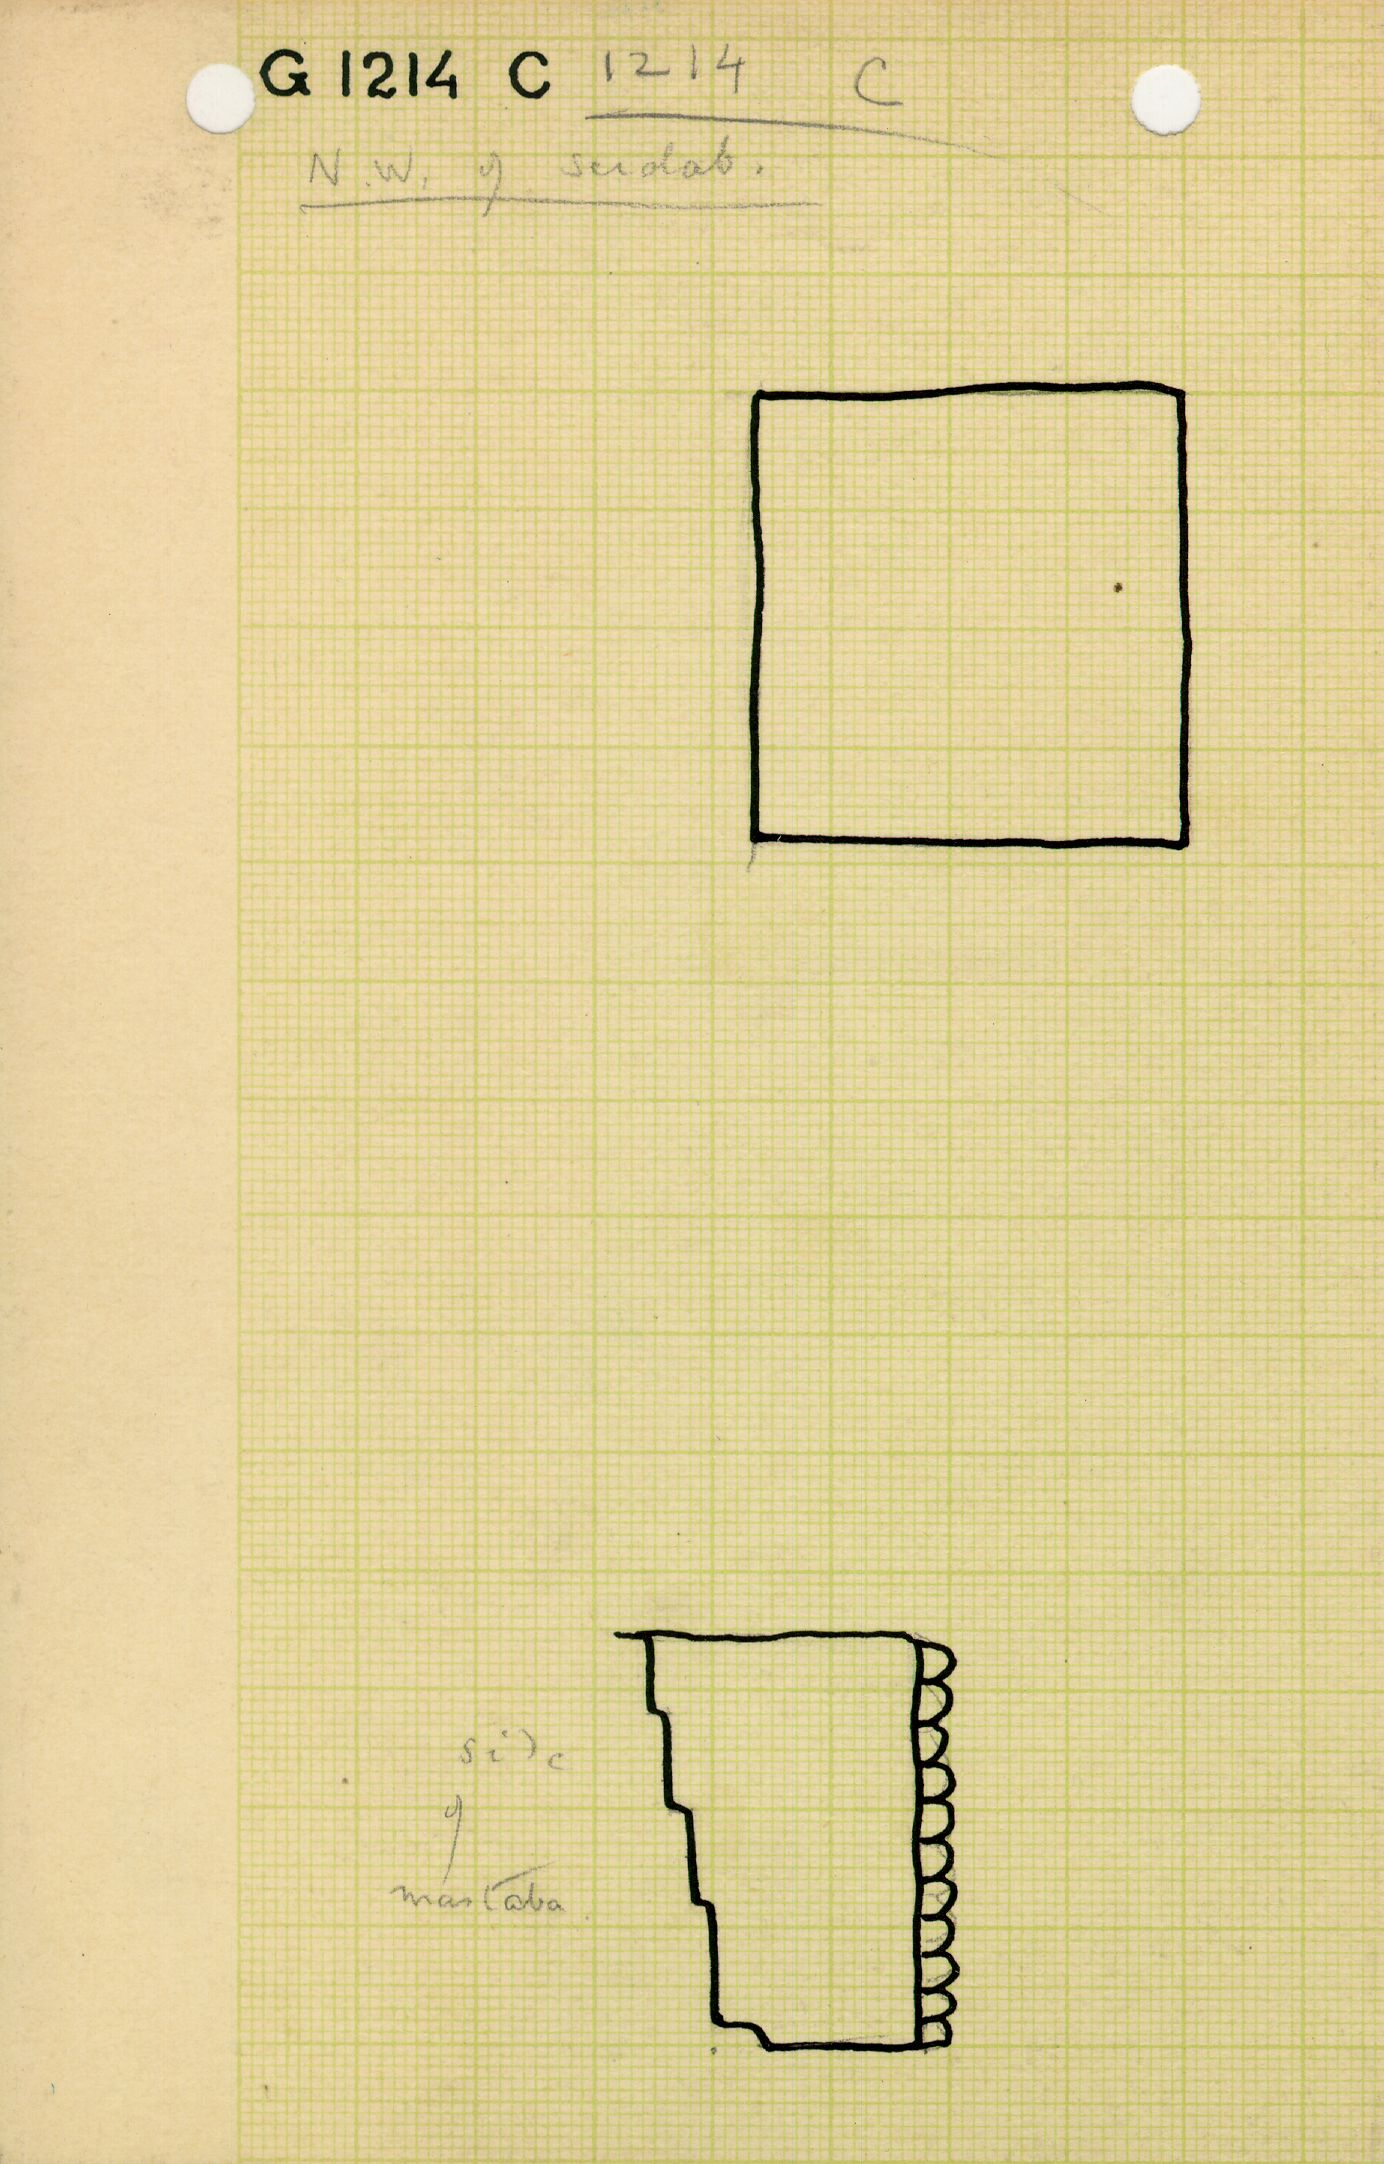 Maps and plans: G 1214, Shaft C